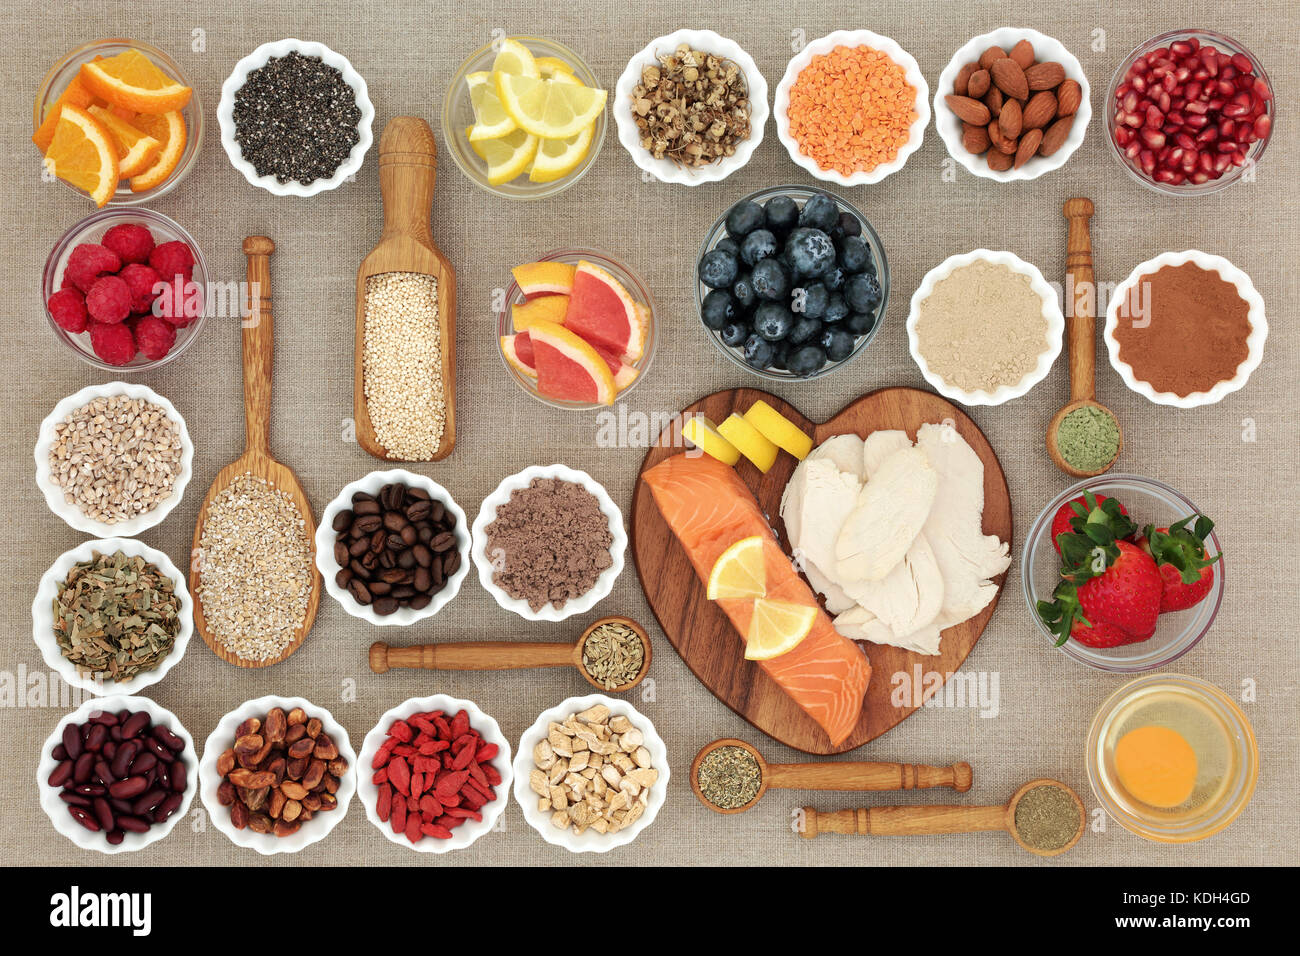 Super food for healthy dieting with high protein fish and meat, fruit, pulses, nuts, cereals and grains including - Stock Image